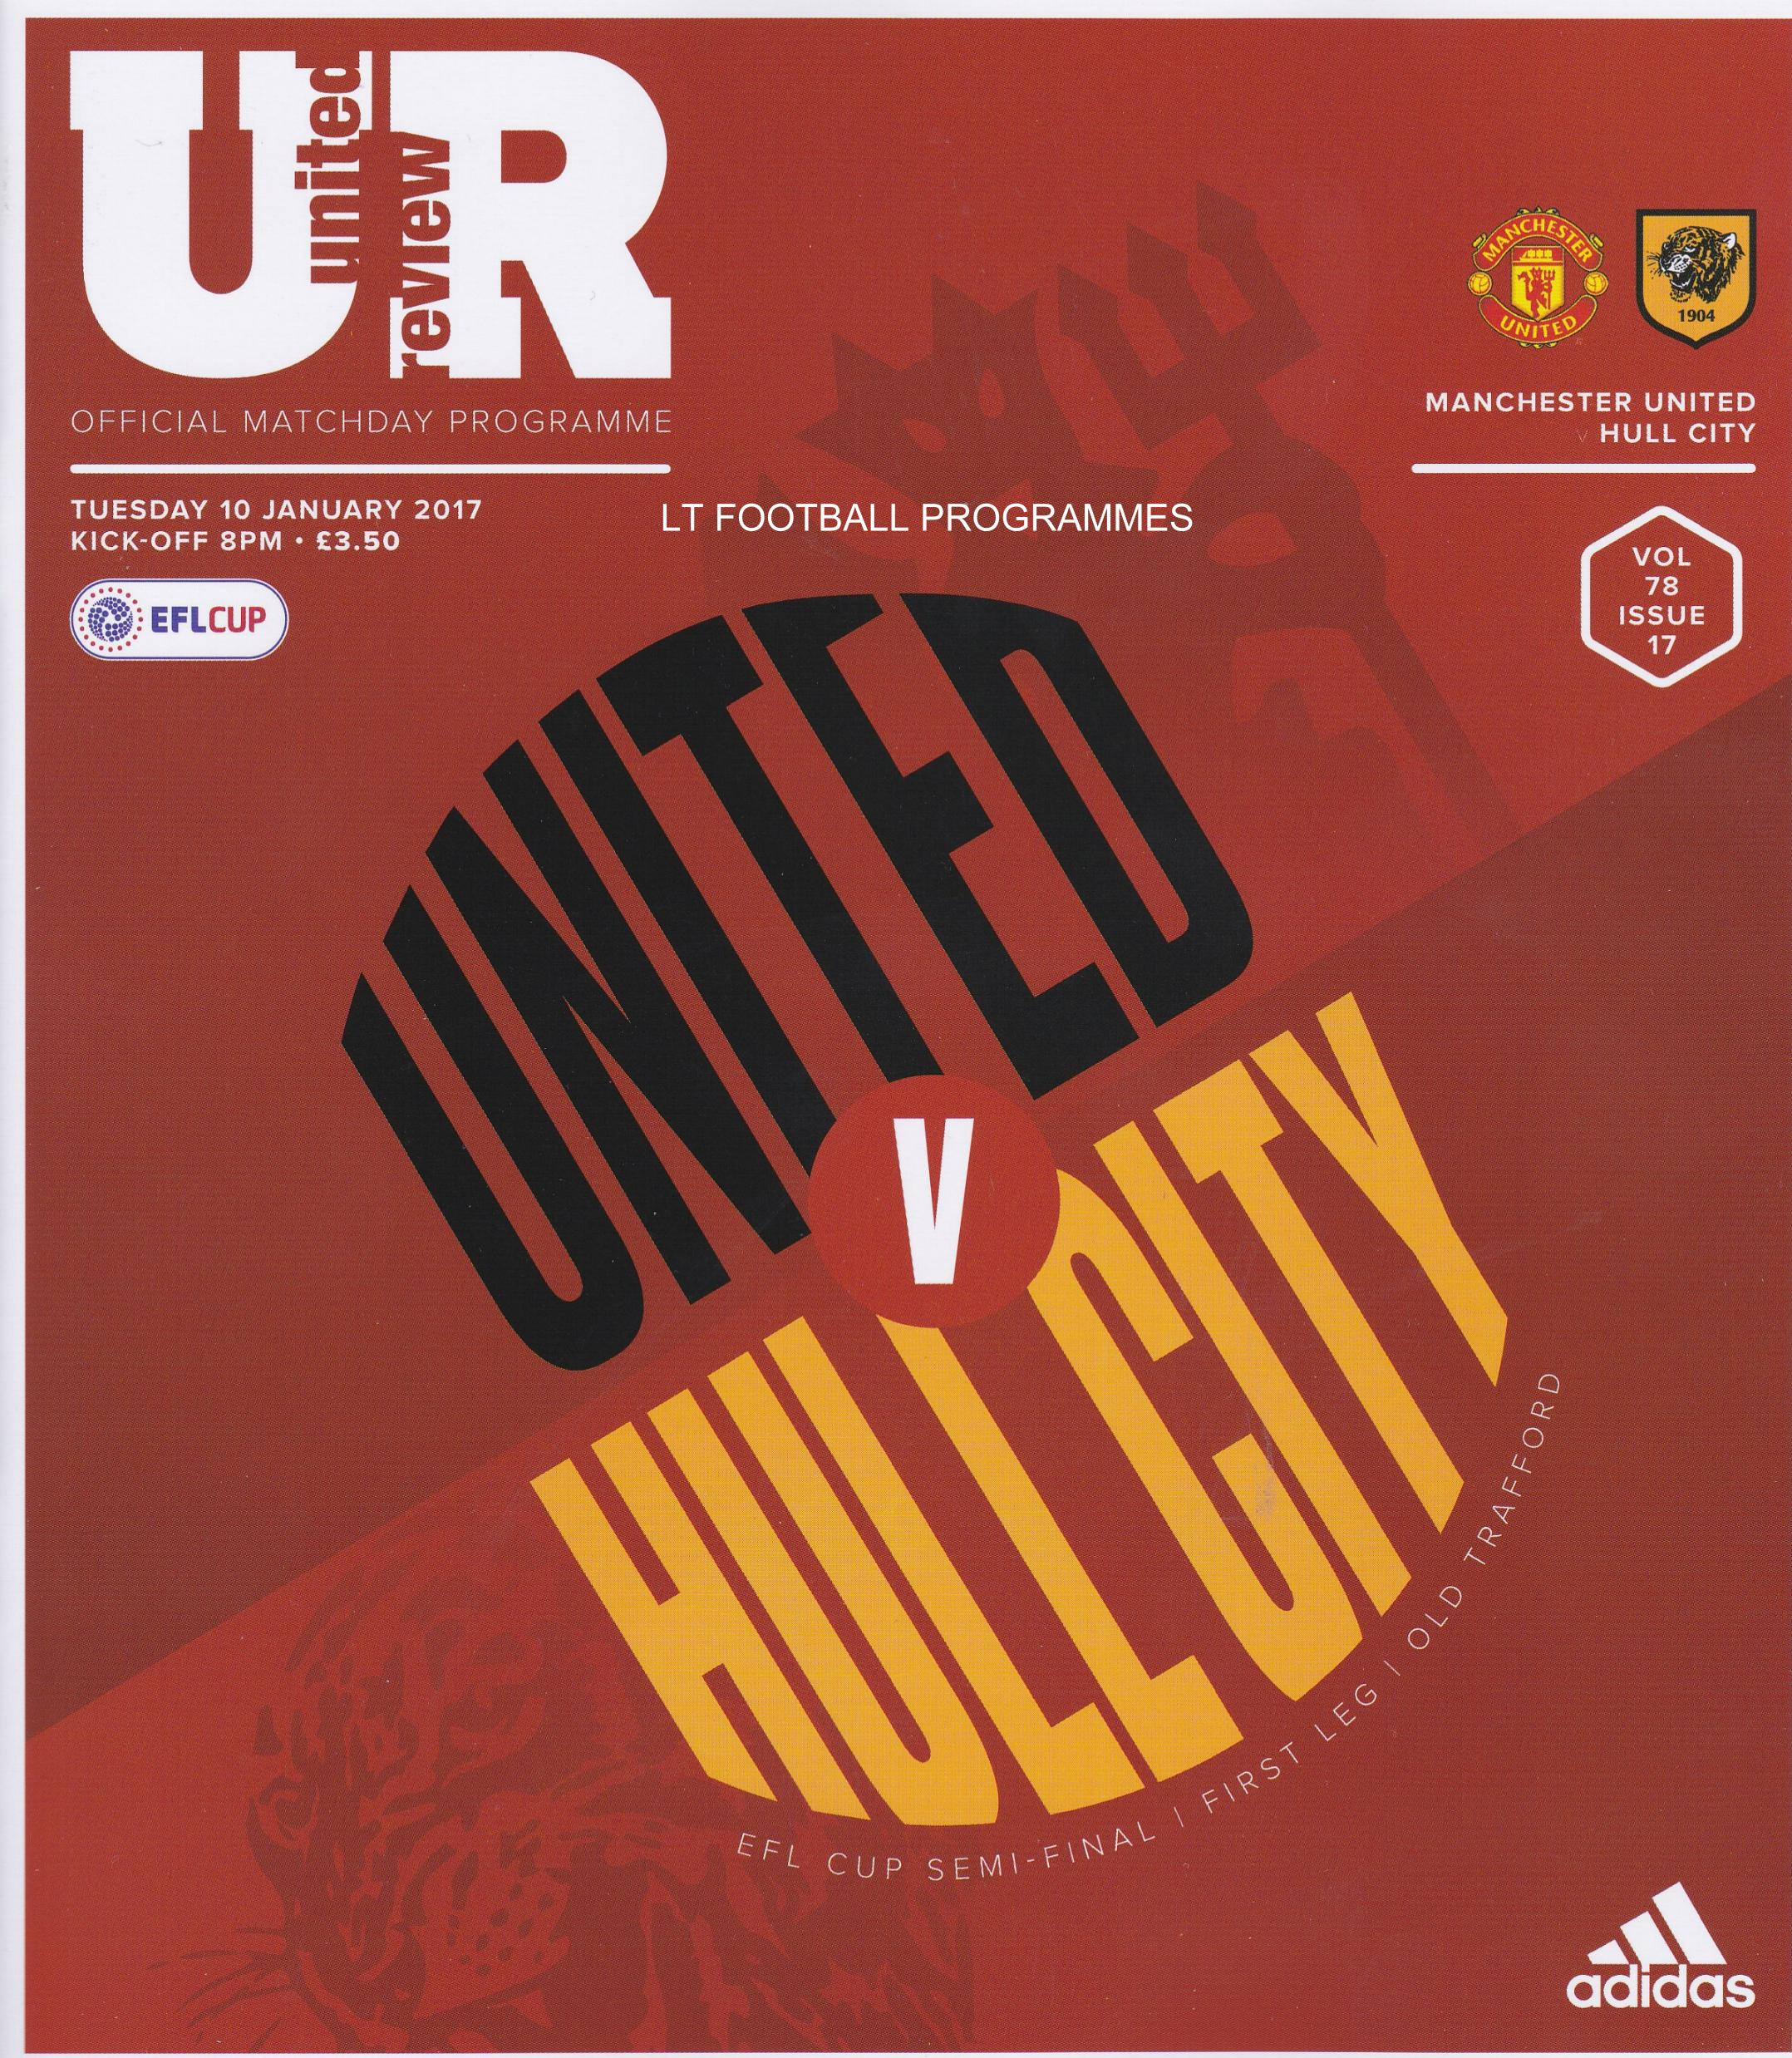 2017 EFL CUP SEMI-FINAL - MAN UTD v HULL CITY